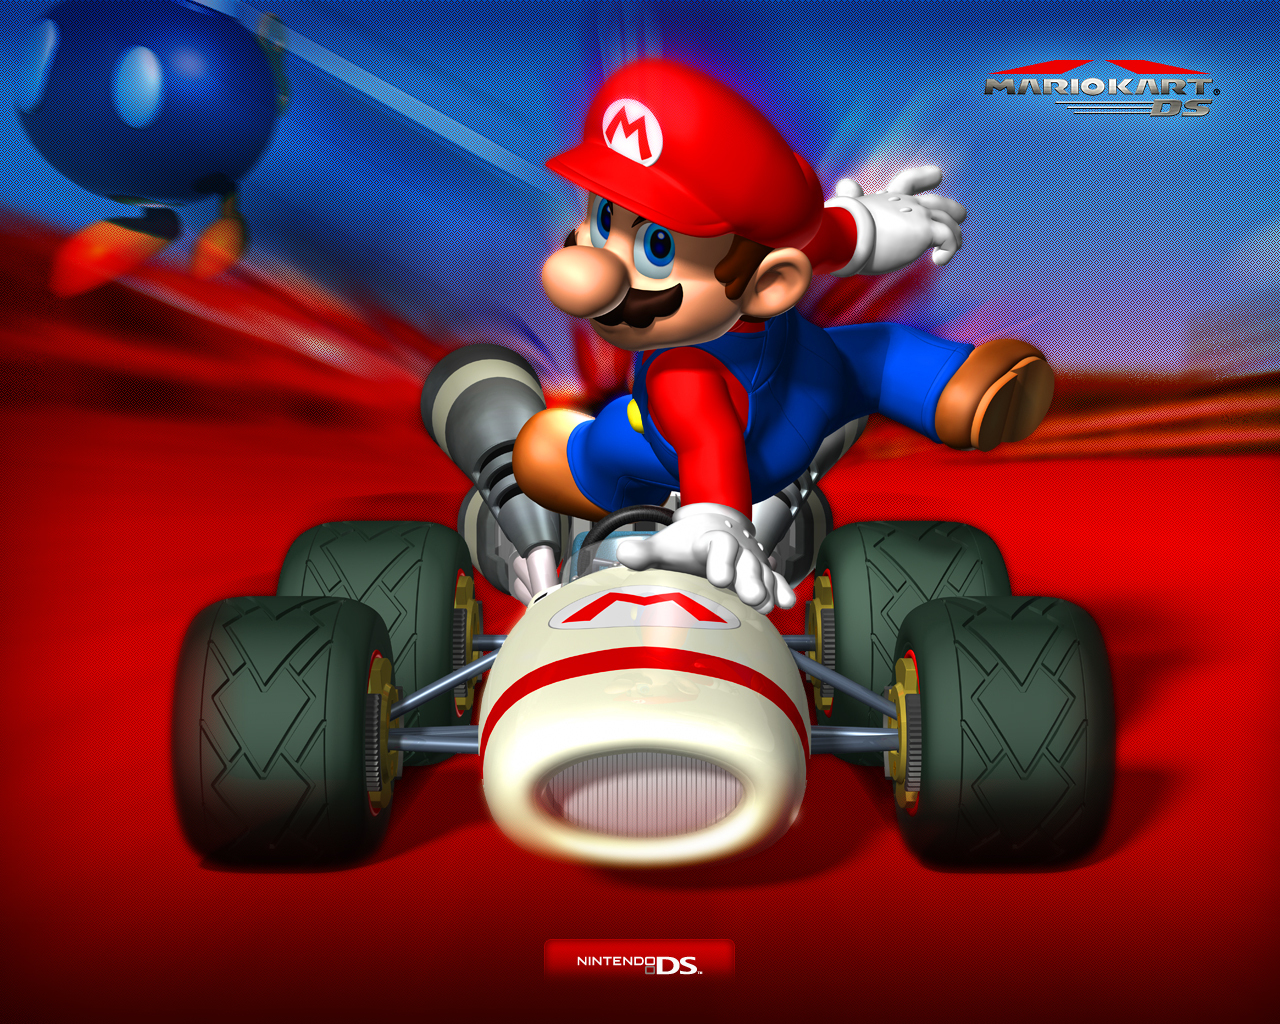 Video Games Mario Kart 7 Racing Round In 3d On Nintendo 3ds